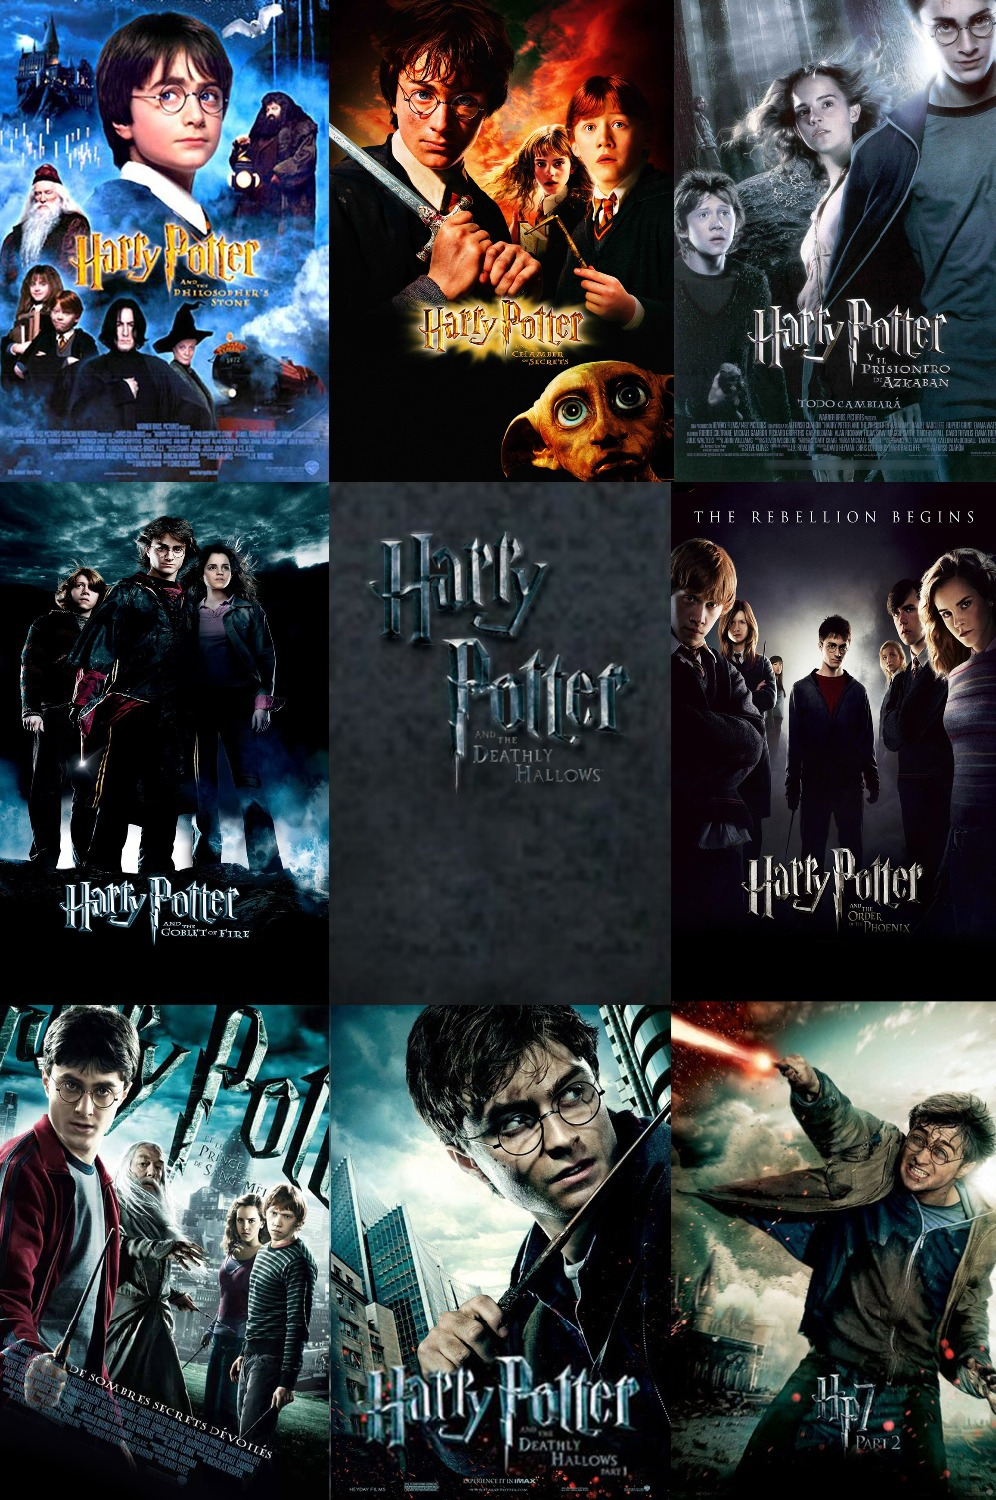 Simple Wallpaper Harry Potter Square - Custom-Wall-Decals-Bedroom-Mural-Harry-Potter-Decoration-Harry-Potter-Poster-HP-1234567-Movie-Wall-Sticker  Best Photo Reference_411336.jpg